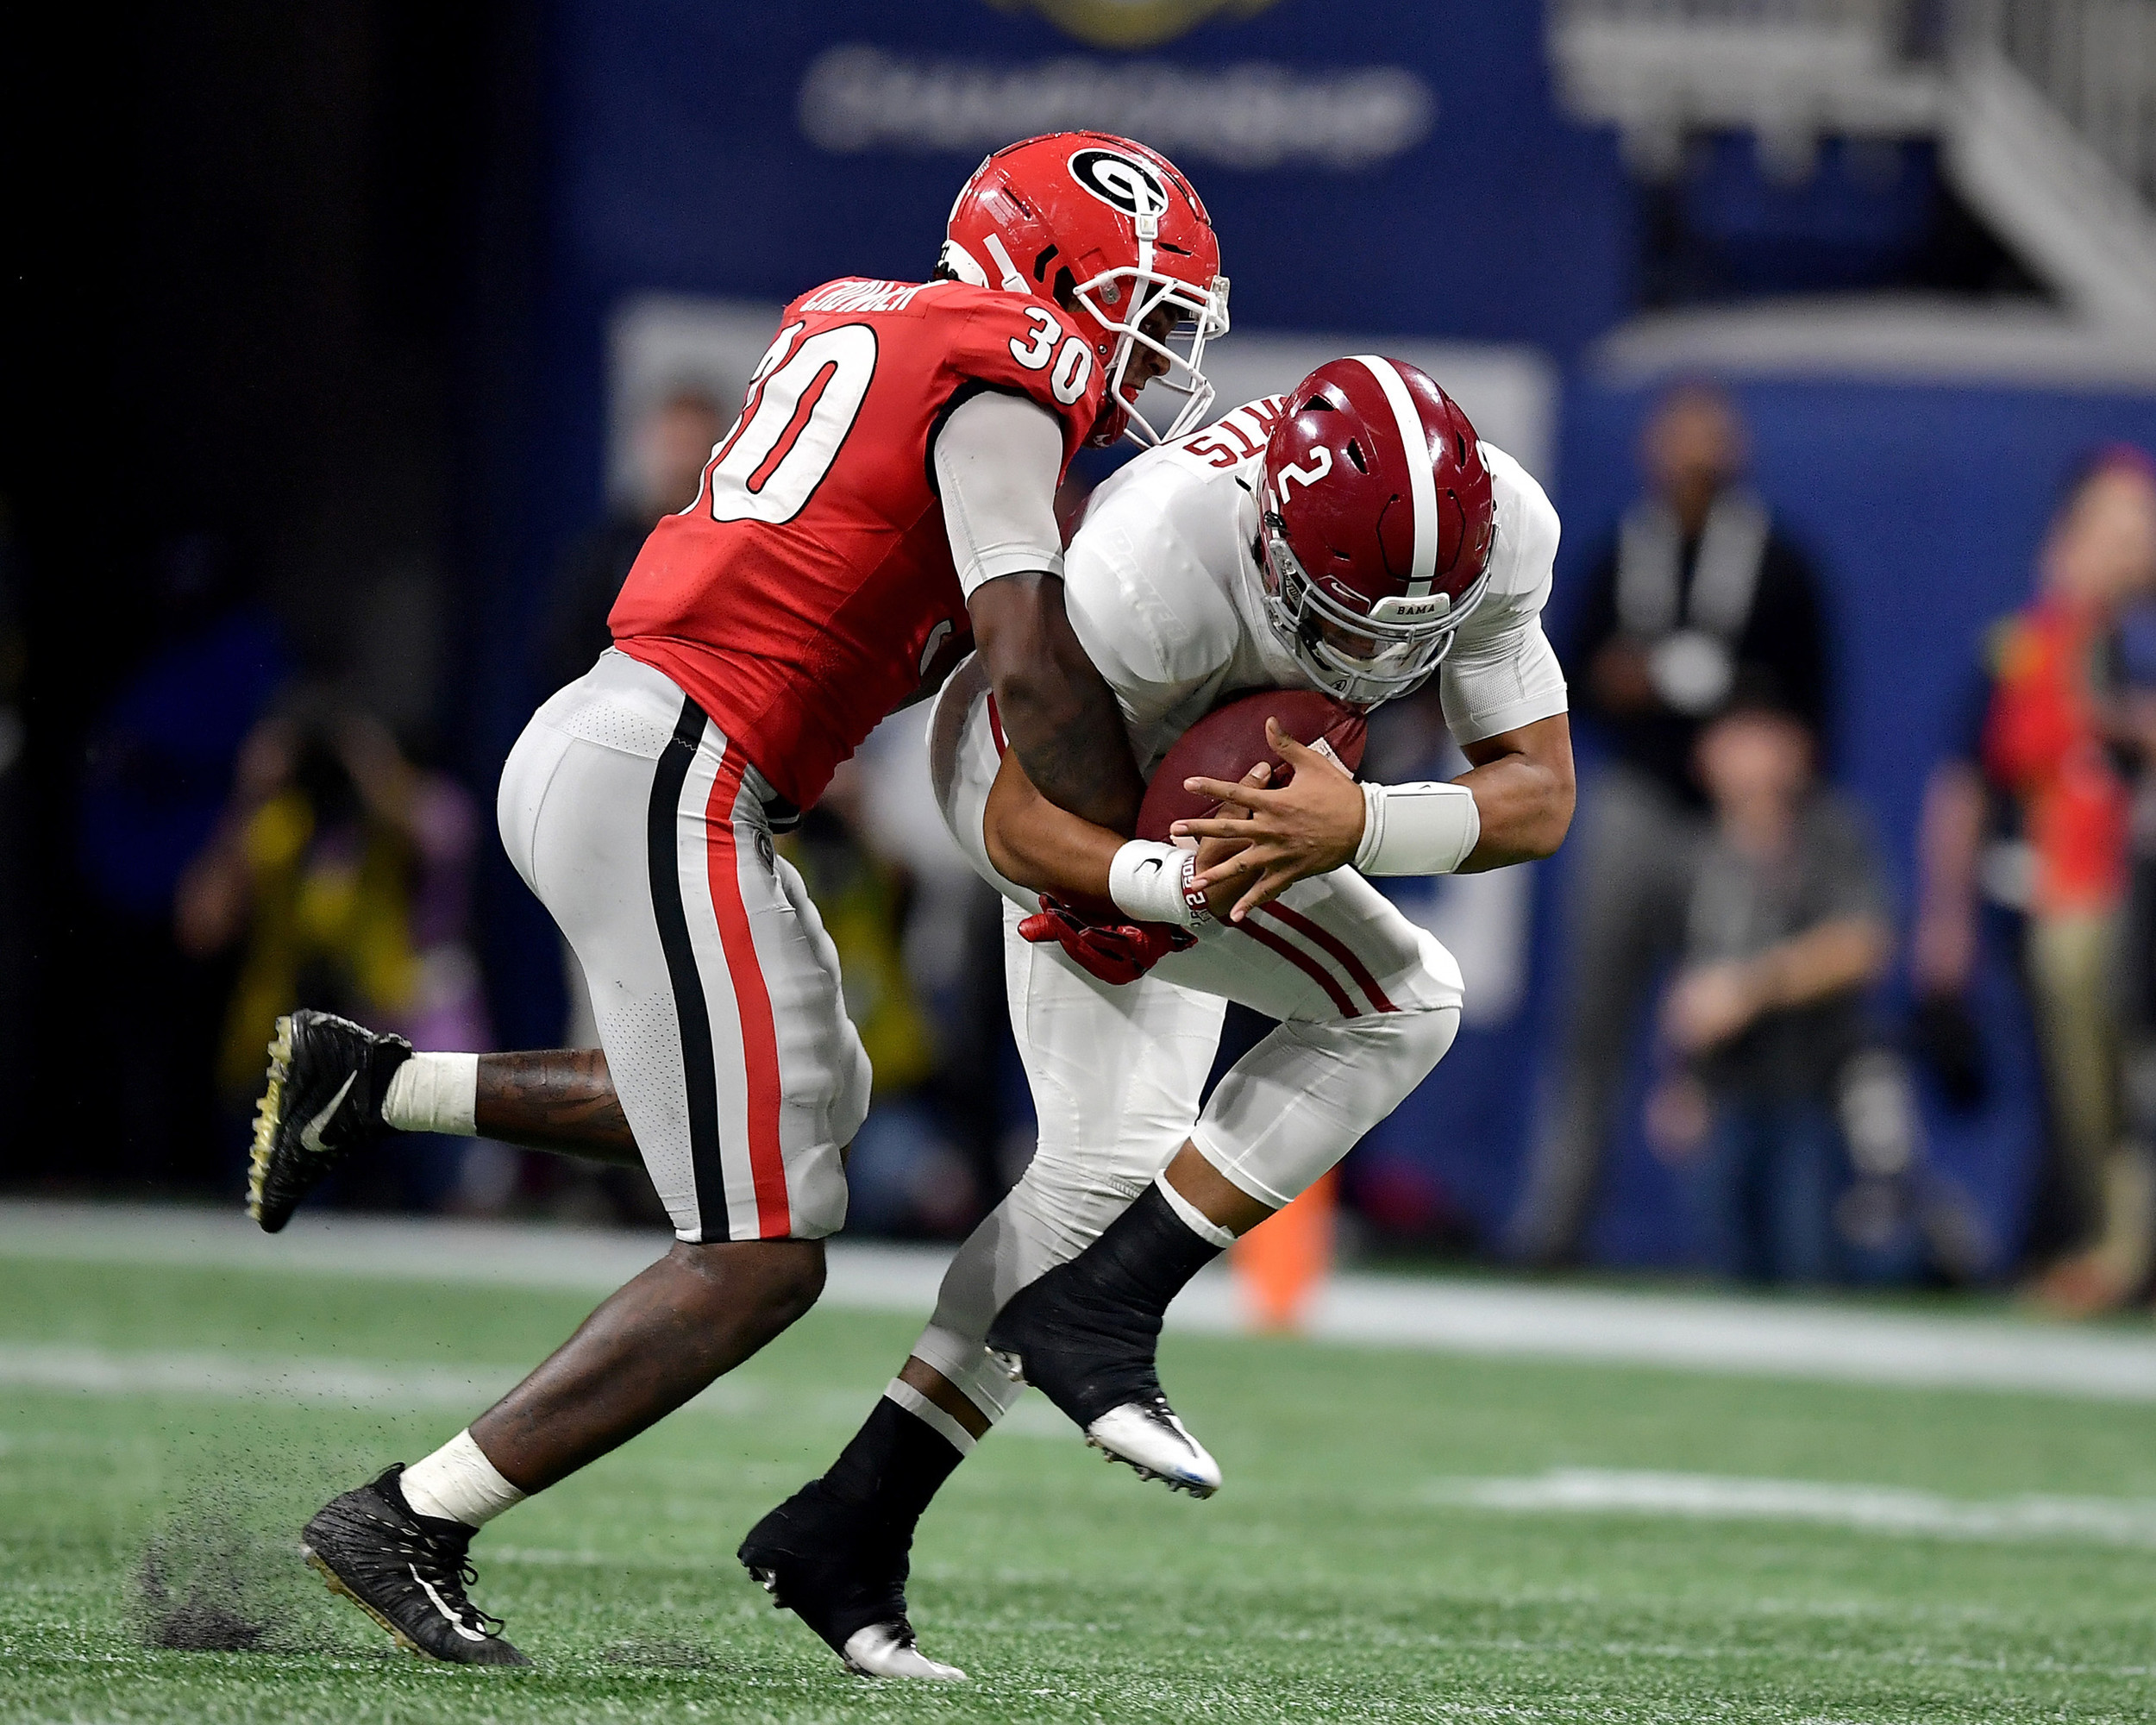 Alabama Crimson Tide quarterback Jalen Hurts (2) tries to avoid being tackled by Georgia Bulldogs linebacker Tae Crowder (30) in the fourth quarter of the 2018 SEC Championship football game at Mercedes-Benz Stadium in Atlanta, Ga., on Dec. 1, 2018. Alabama wins 35-28. (Photo by Lee Walls)